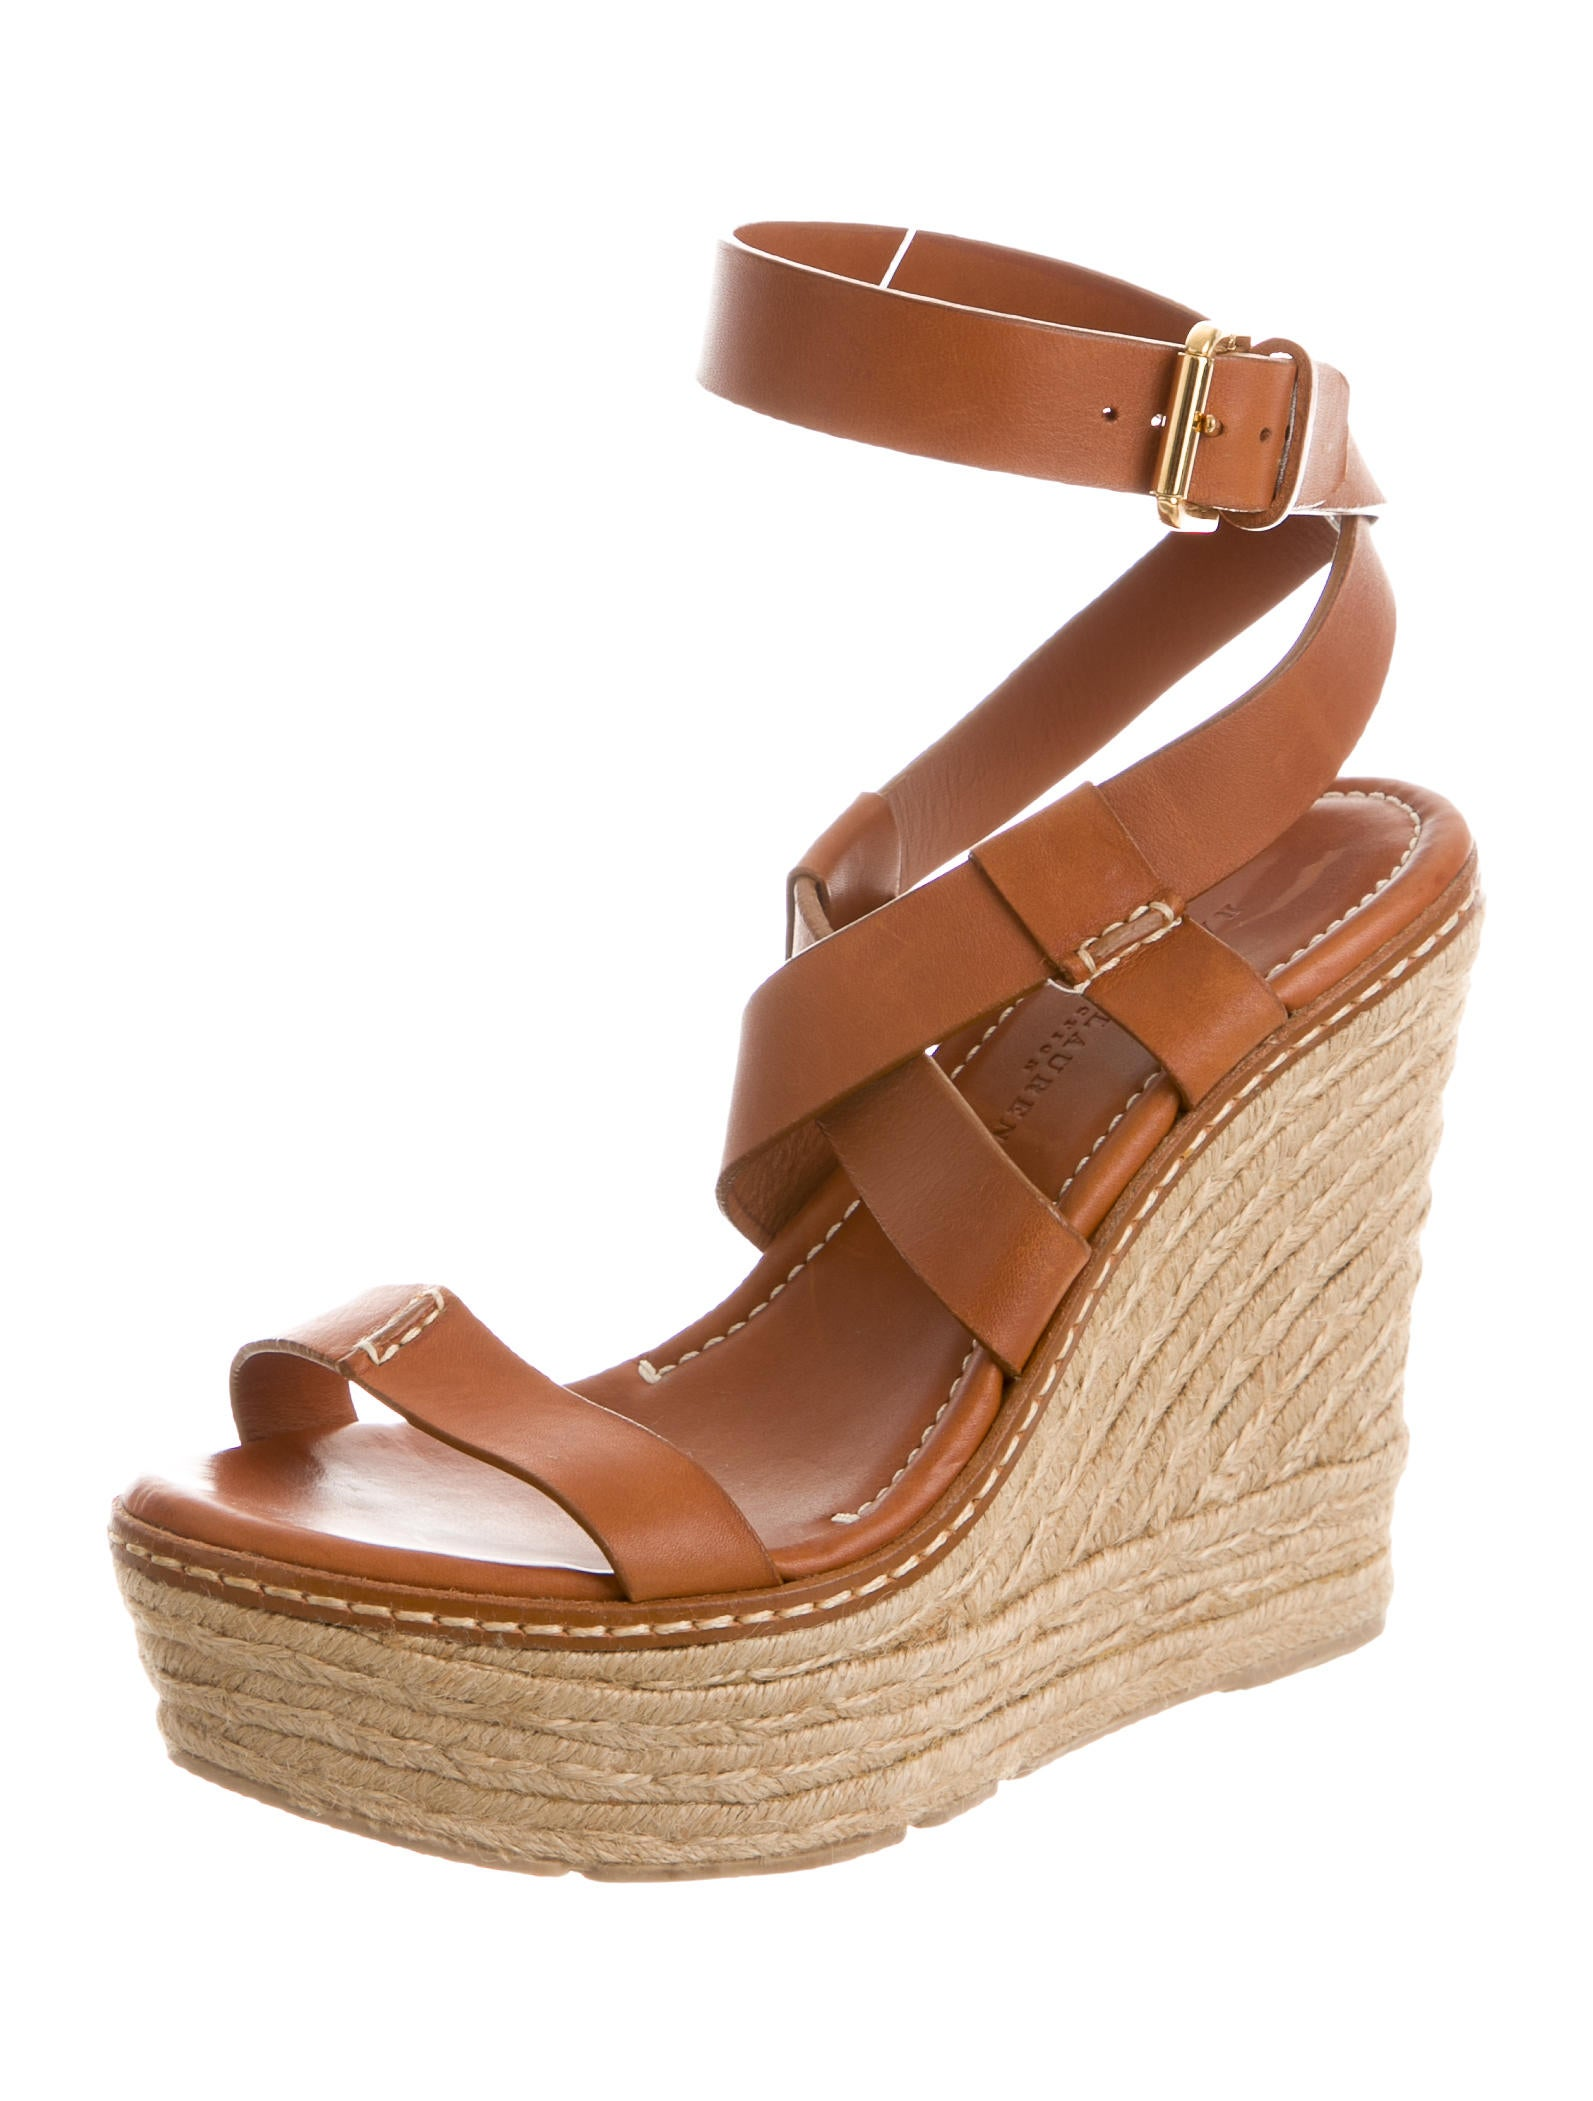 ralph lauren collection leather espadrille wedges shoes ral21173 the realreal. Black Bedroom Furniture Sets. Home Design Ideas